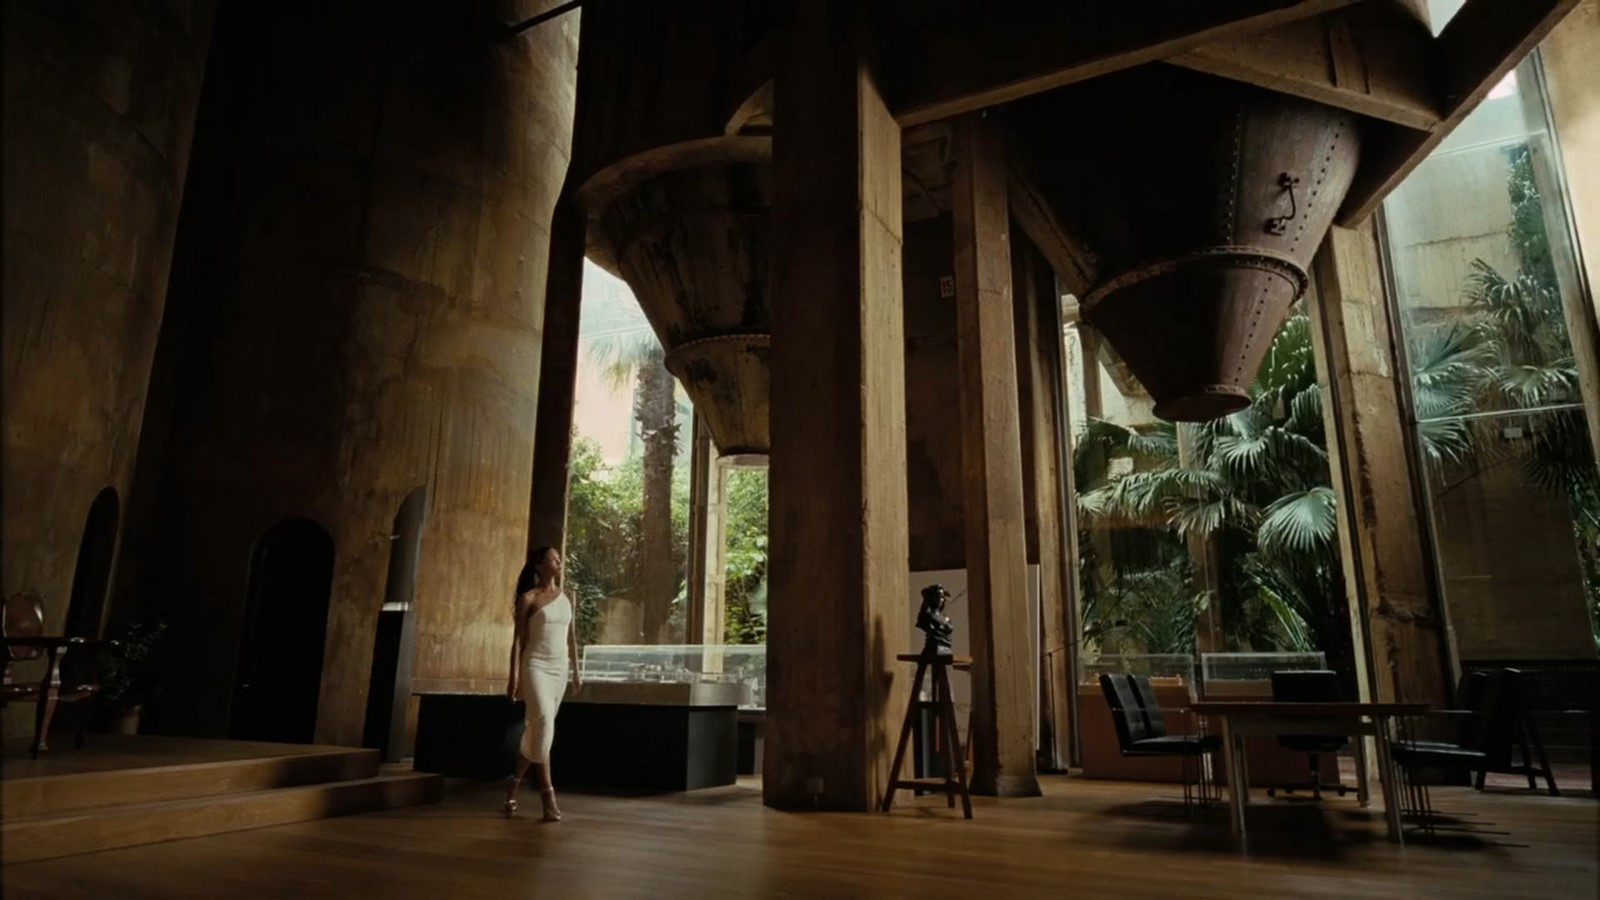 The 'Future' architecture of Westworld - Sheet4